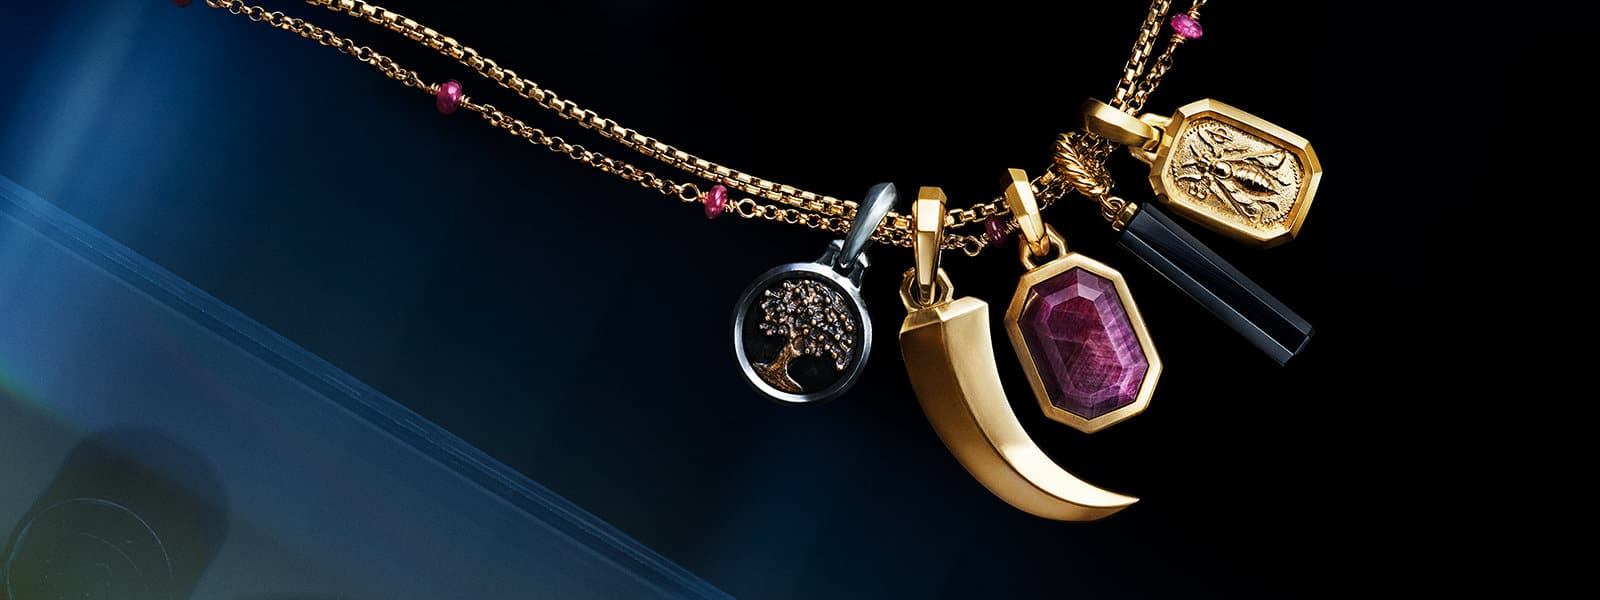 A color photograph shows a close-up of five David Yurman women's amulets atop a reflective background with angular, multi-colored reflections of light and jewelry. Three of the amulets depict a tree of life, a horn and a bee and are crafted from sterling silver with bronze or 18K yellow gold with or without an emerald-cut ruby or black onyx barrel. The amulets are strung on a box chain and Cable Collectibles necklace, both in 18K yellow gold with or without rubies.